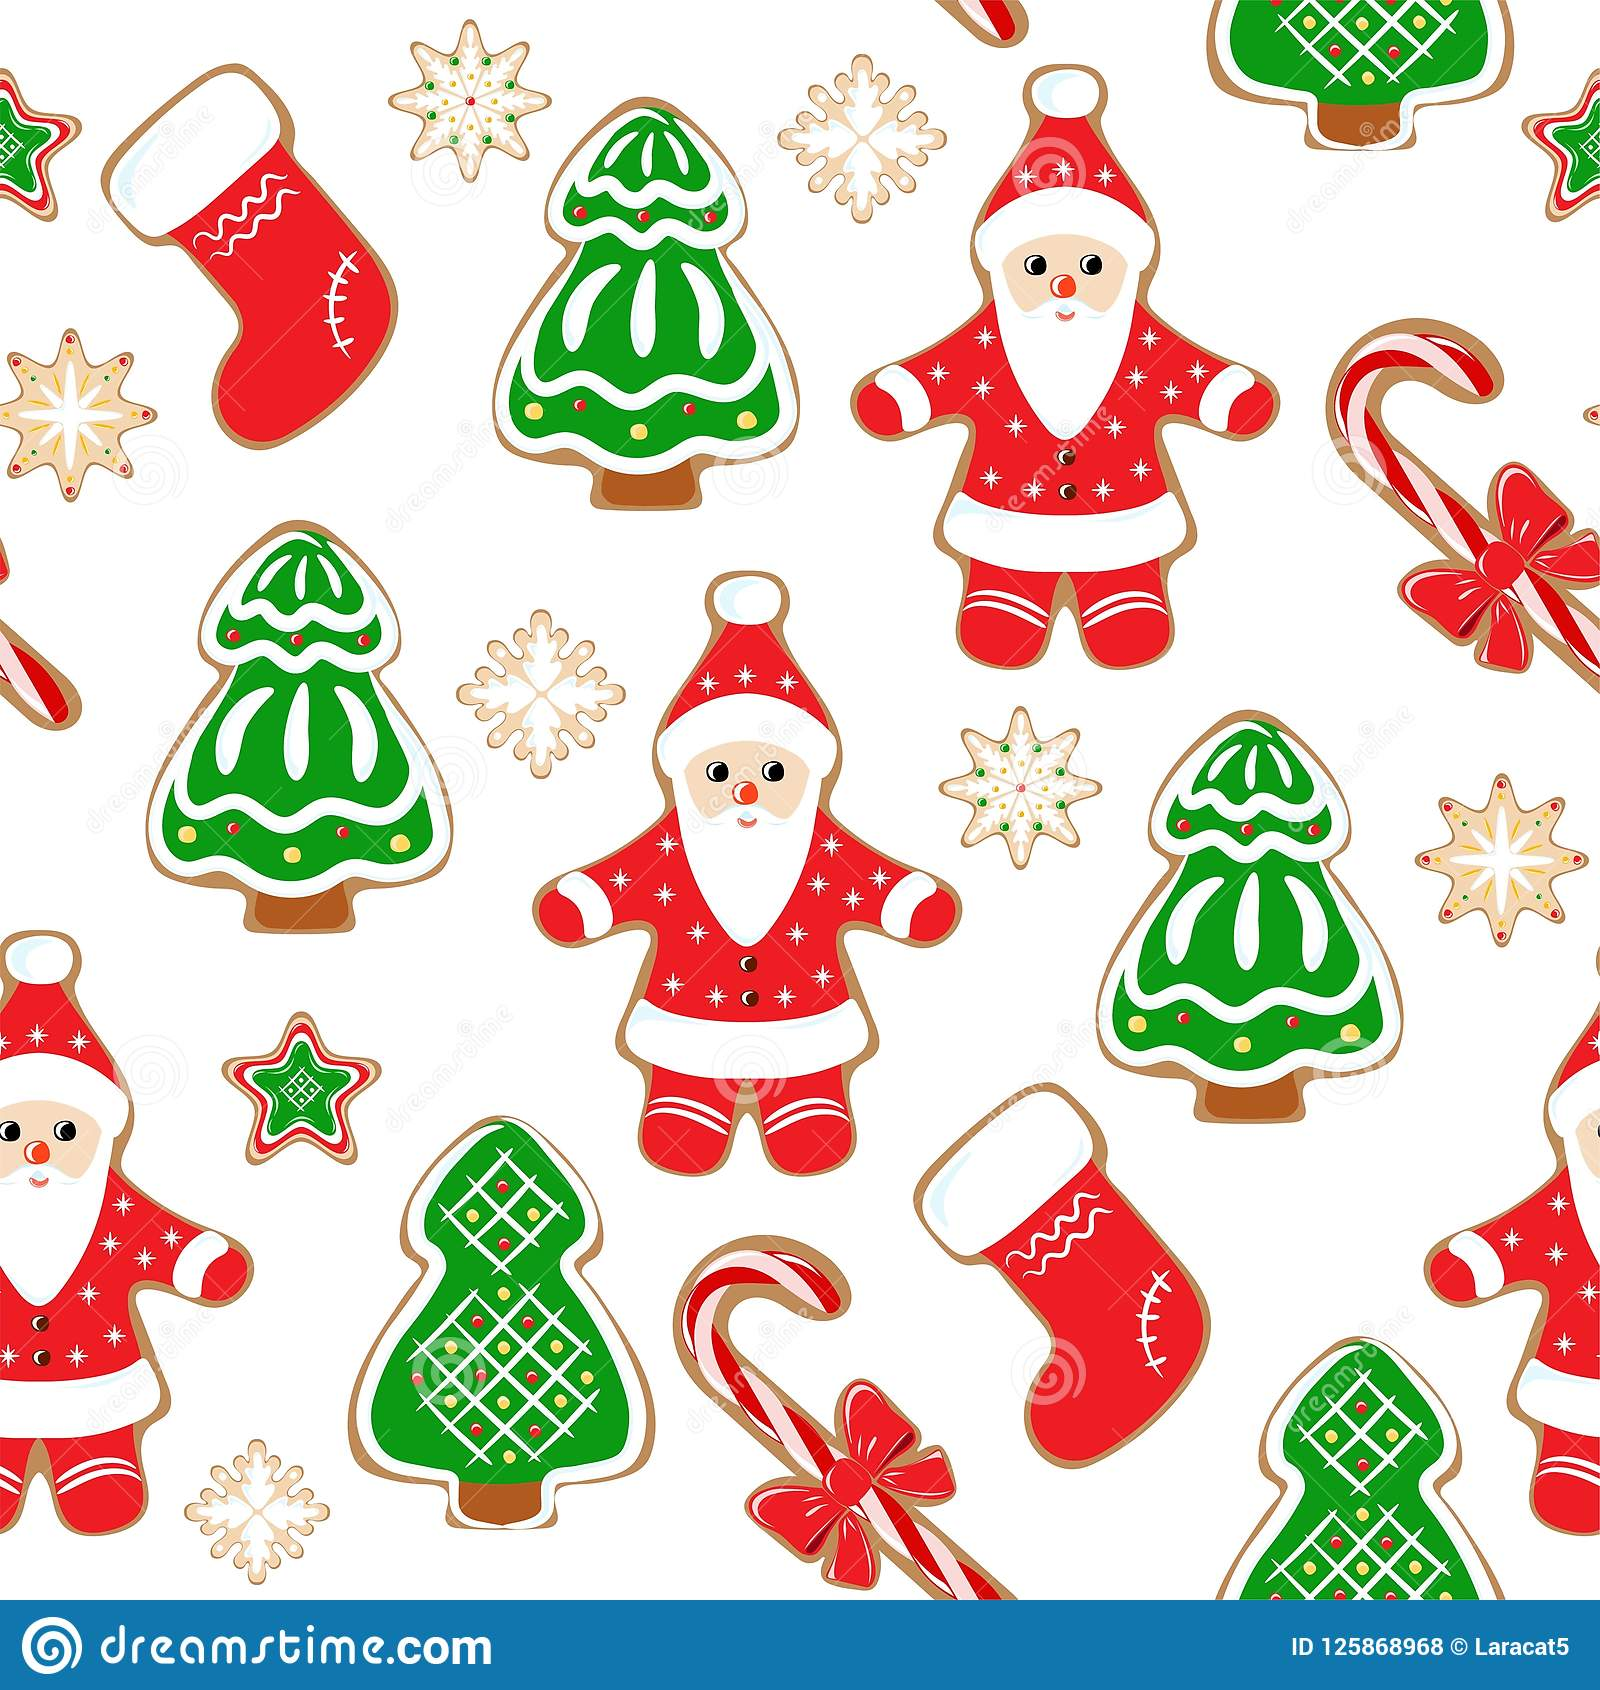 Christmas Trees Background Clipart.Christmas Background Seamless Pattern With Santa And